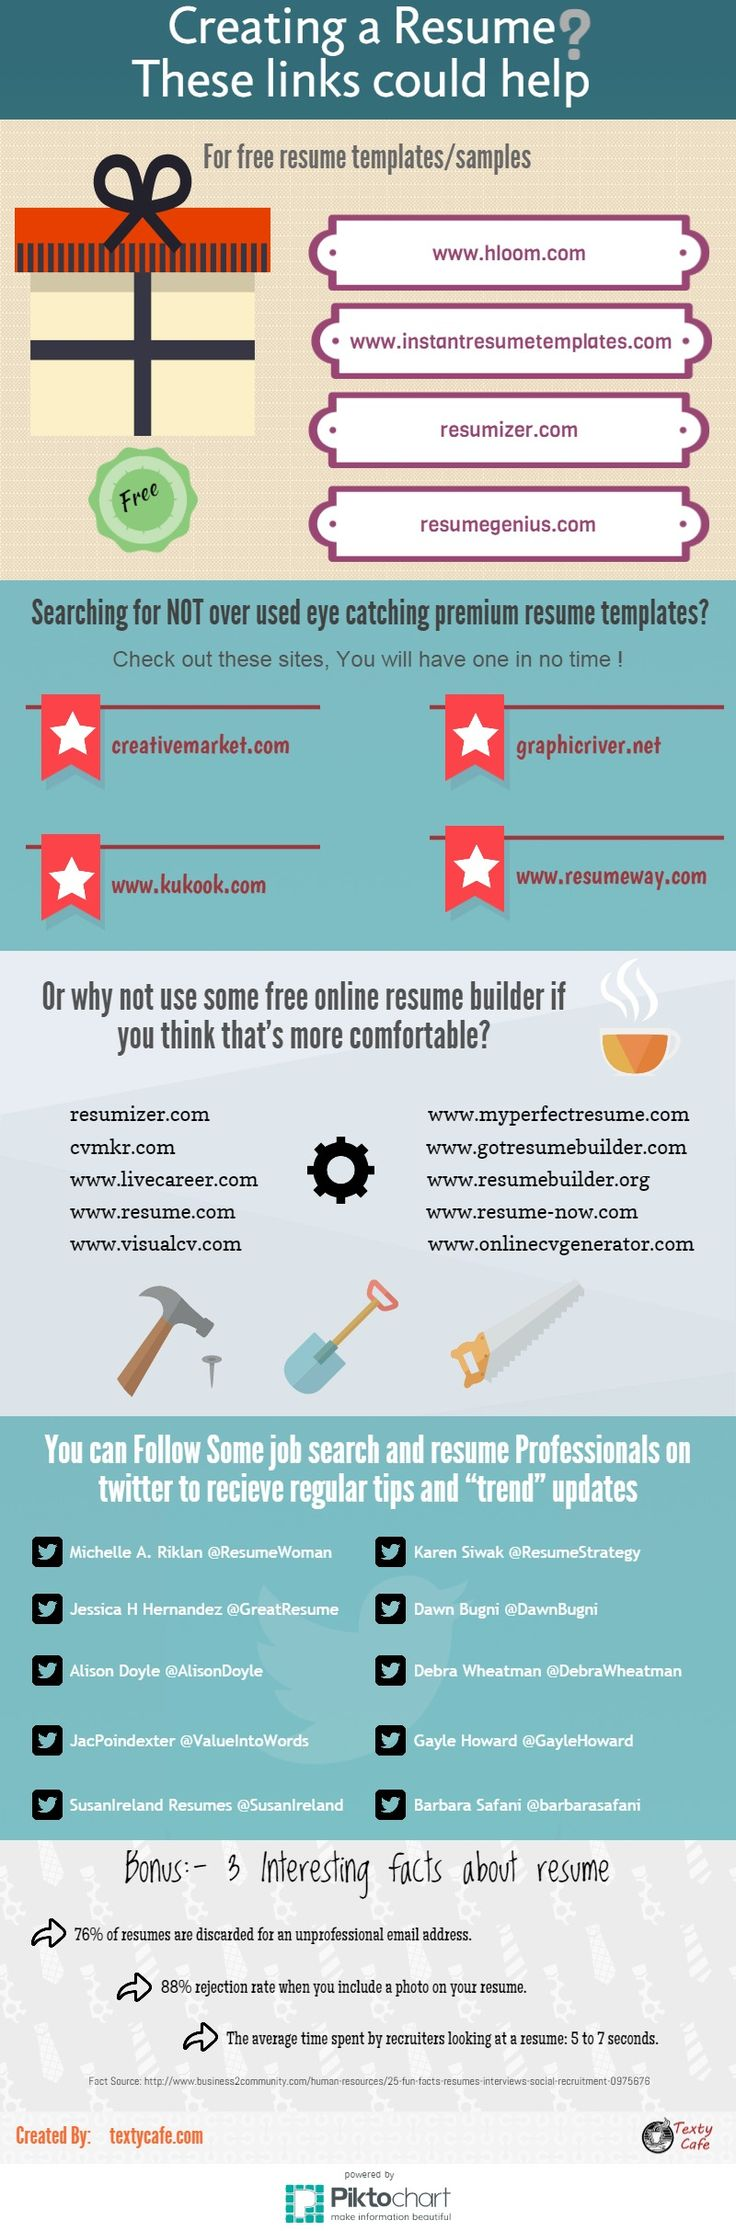 How To Make A Resume Infographic By Textycafe Http://textycafe.com/  Pictures Of Resumes